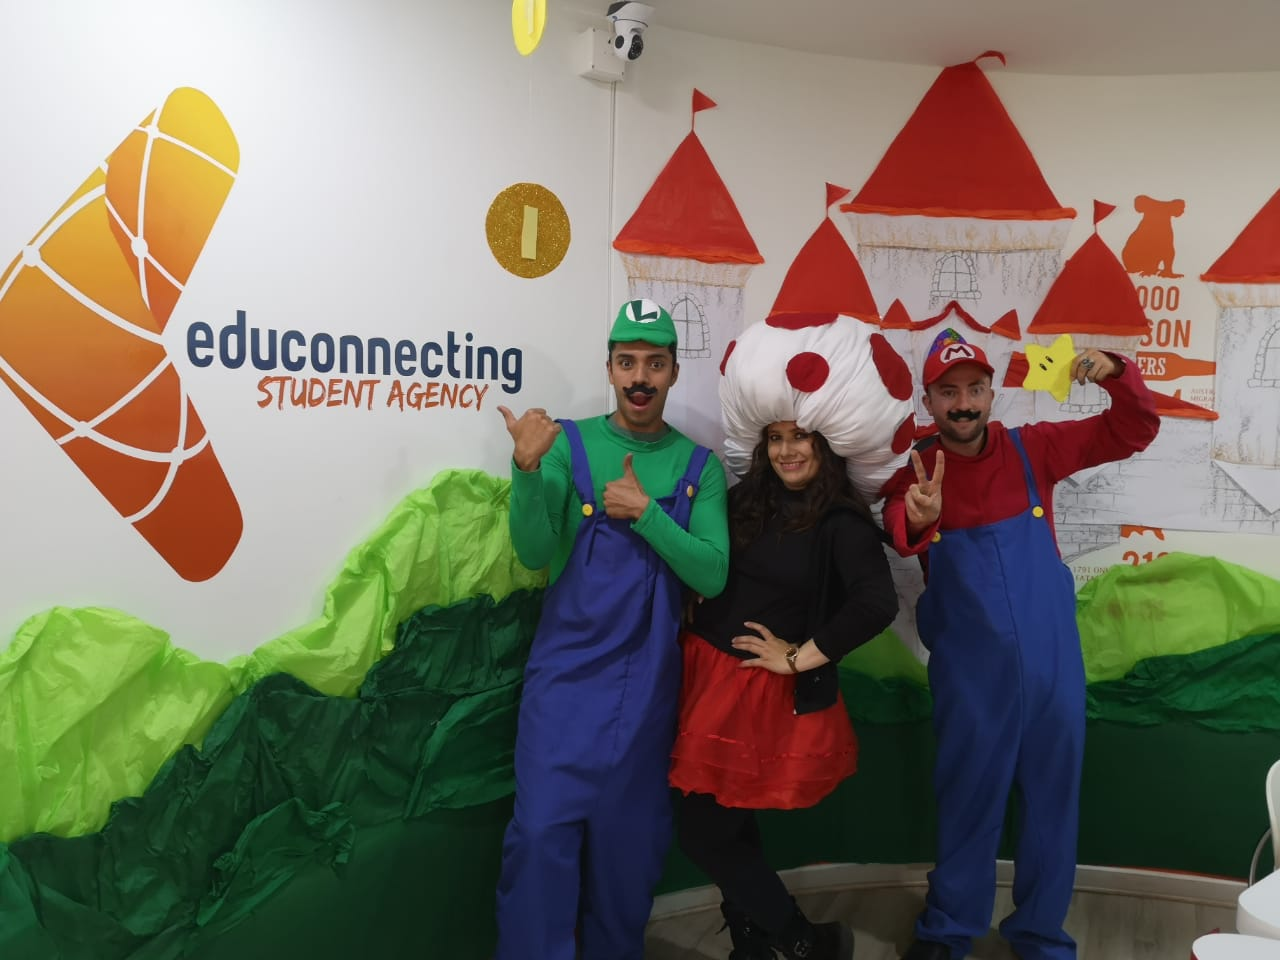 Halloween on Educonnecting